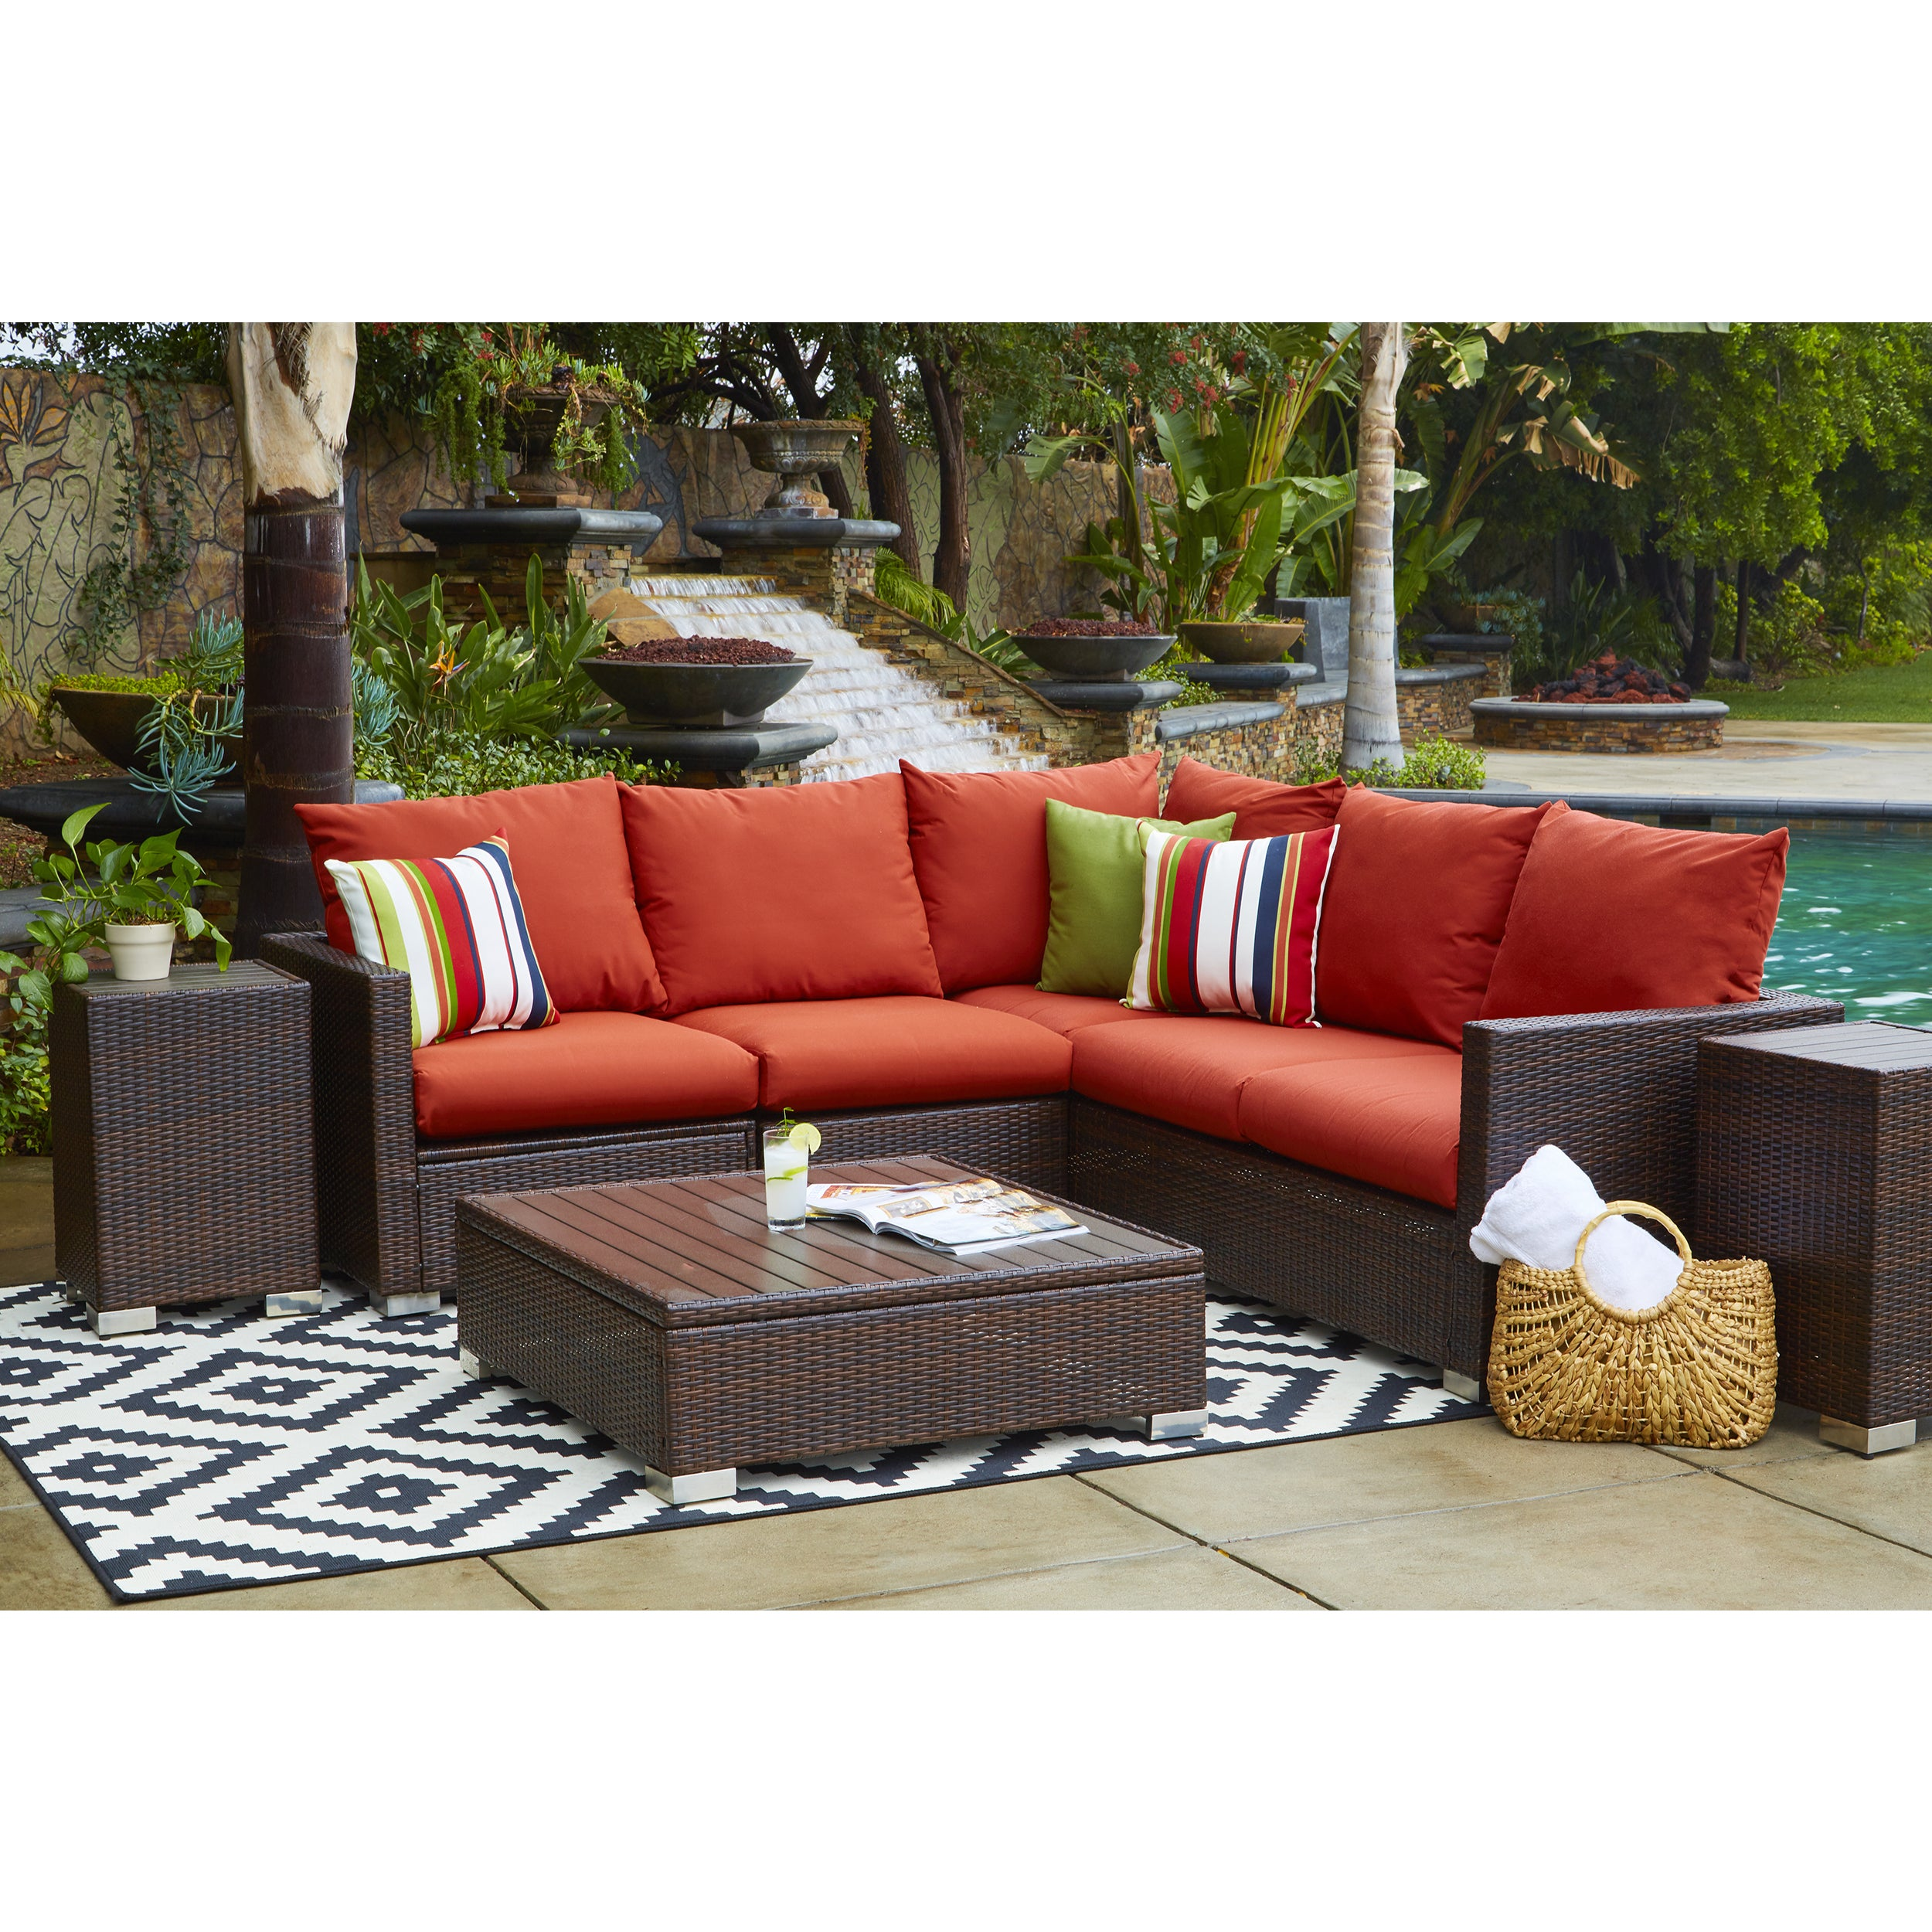 Beau Handy Living Aldrich Indoor/ Outdoor 3 Piece Sectional Set With Sunbrella  Terracotta Cushions